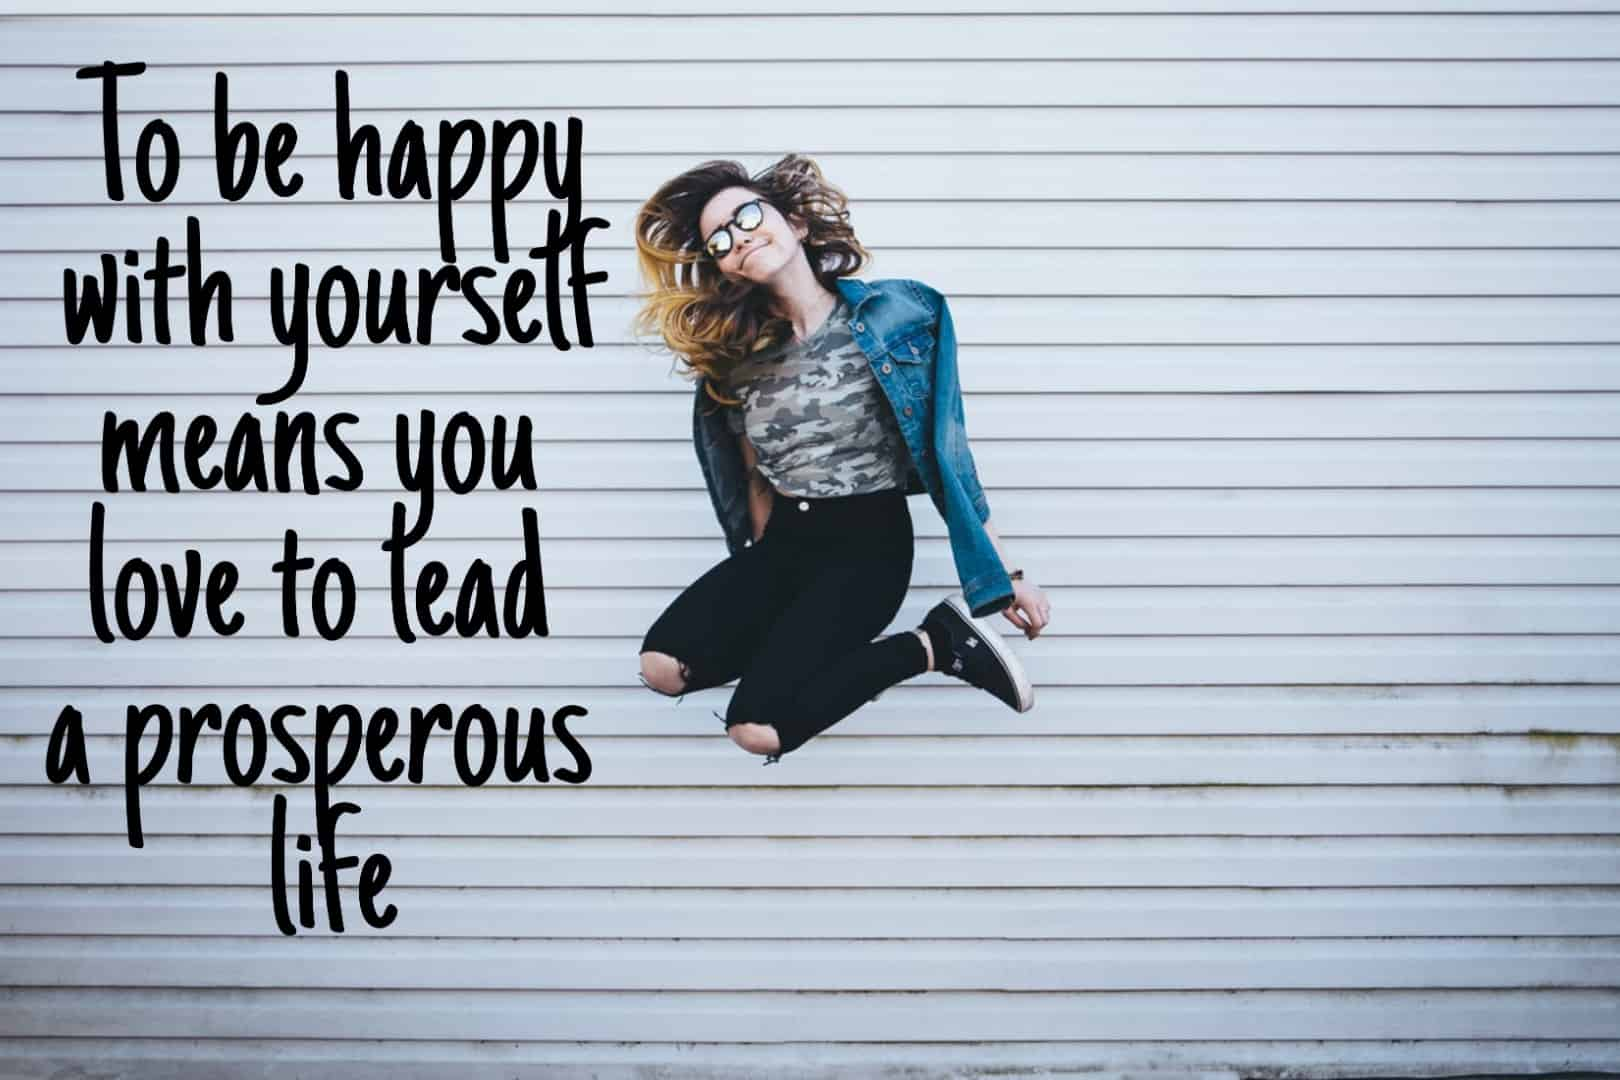 be happy with yourself